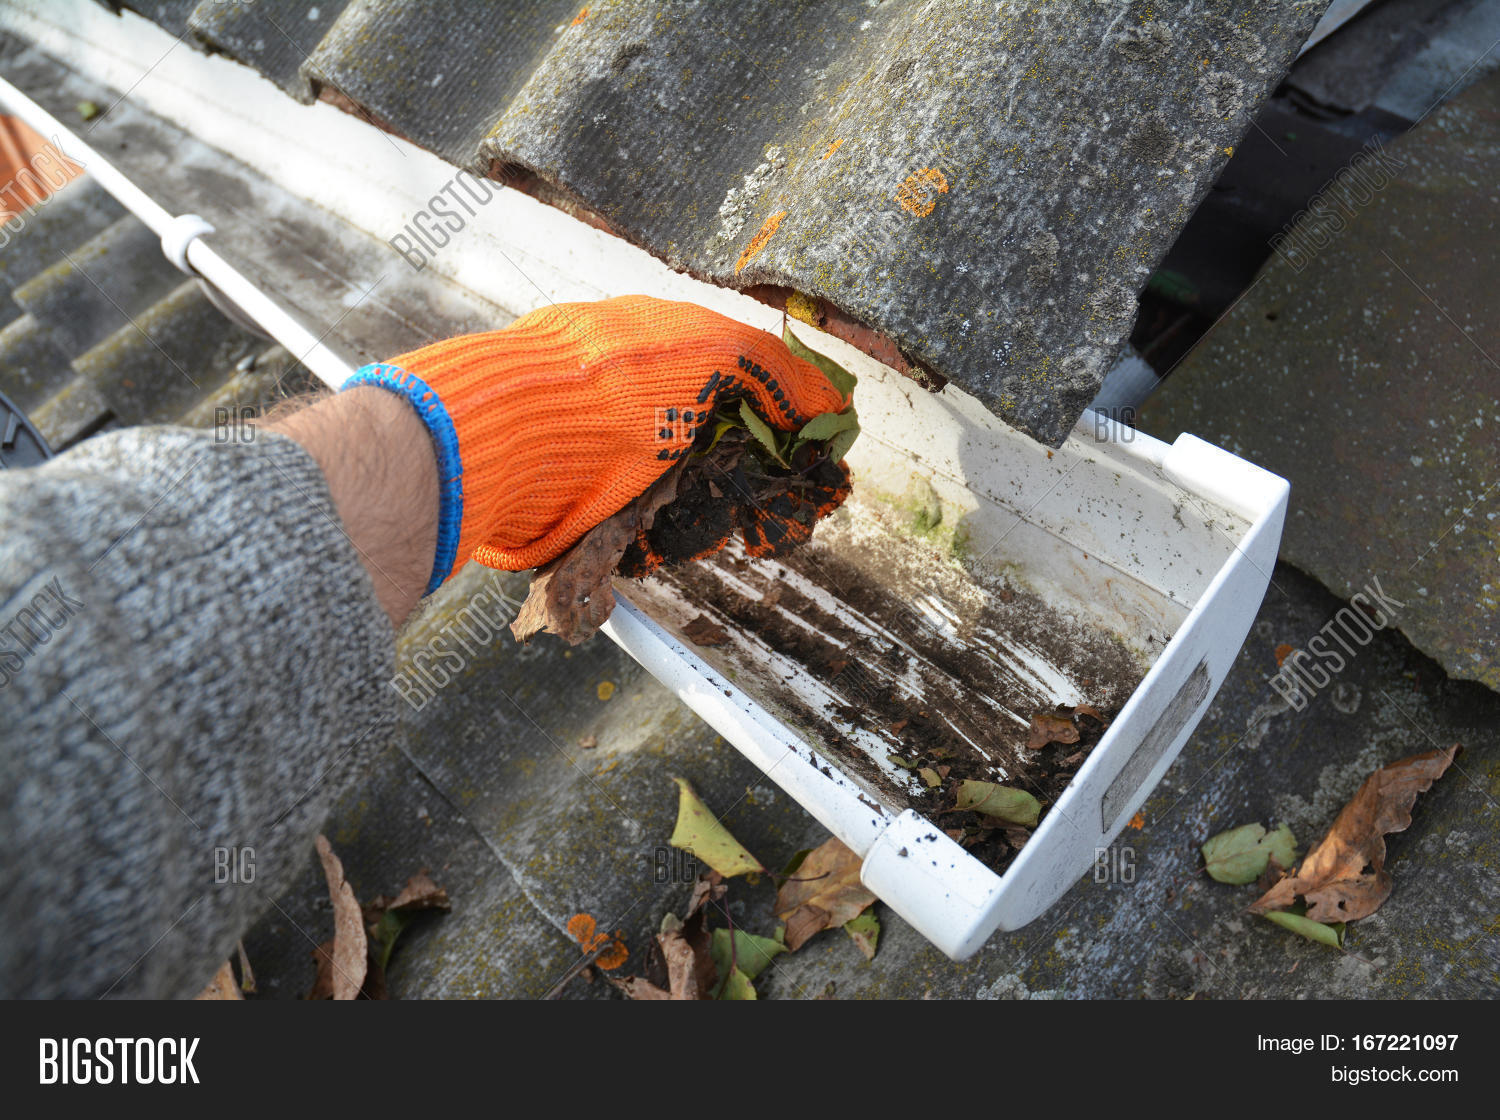 How To Clean Roof Gutters - Home Roof Ideas